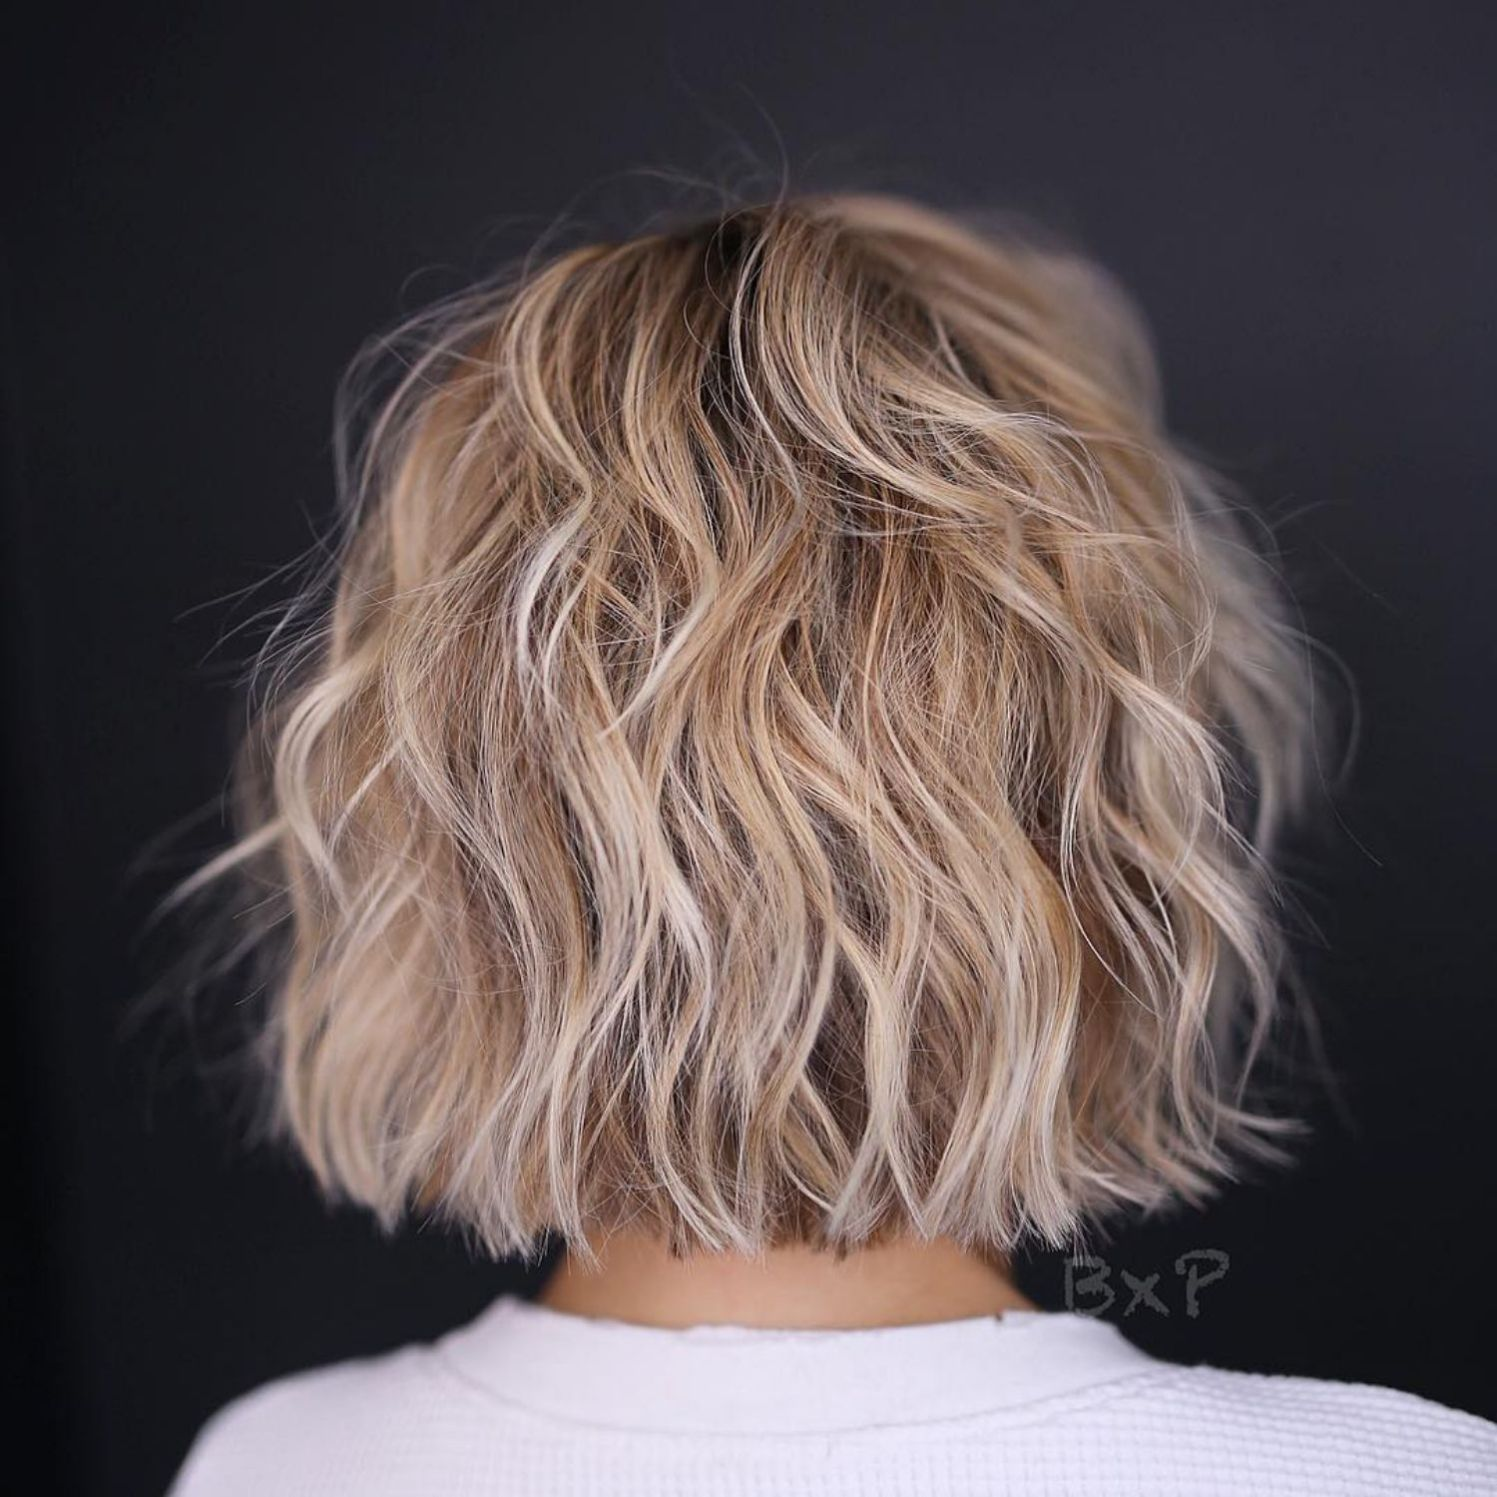 70 Devastatingly Cool Haircuts for Thin Hair in 2020   Short hair with layers, Thin hair ...